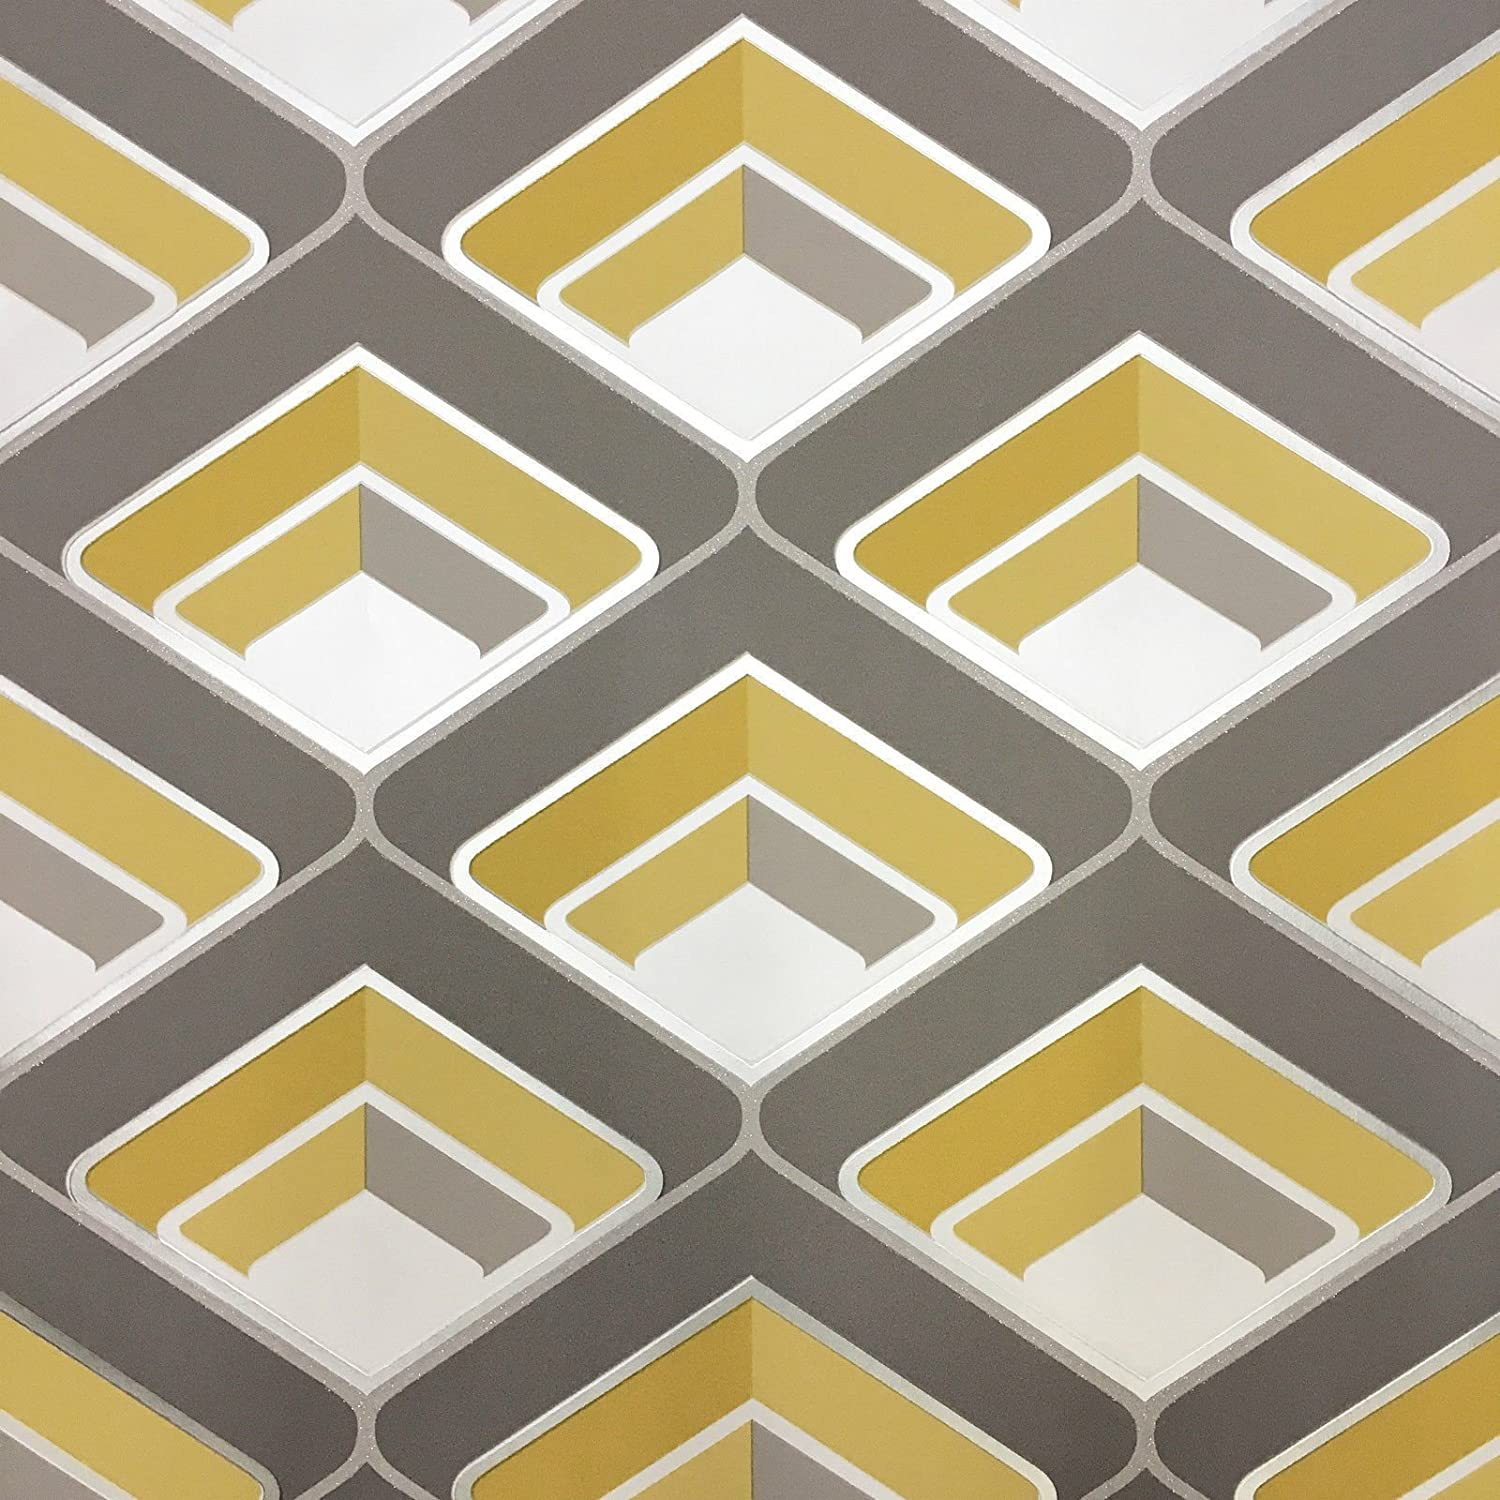 Grandeco Geo In Yellow Geometric 3D Effect Retro Textured